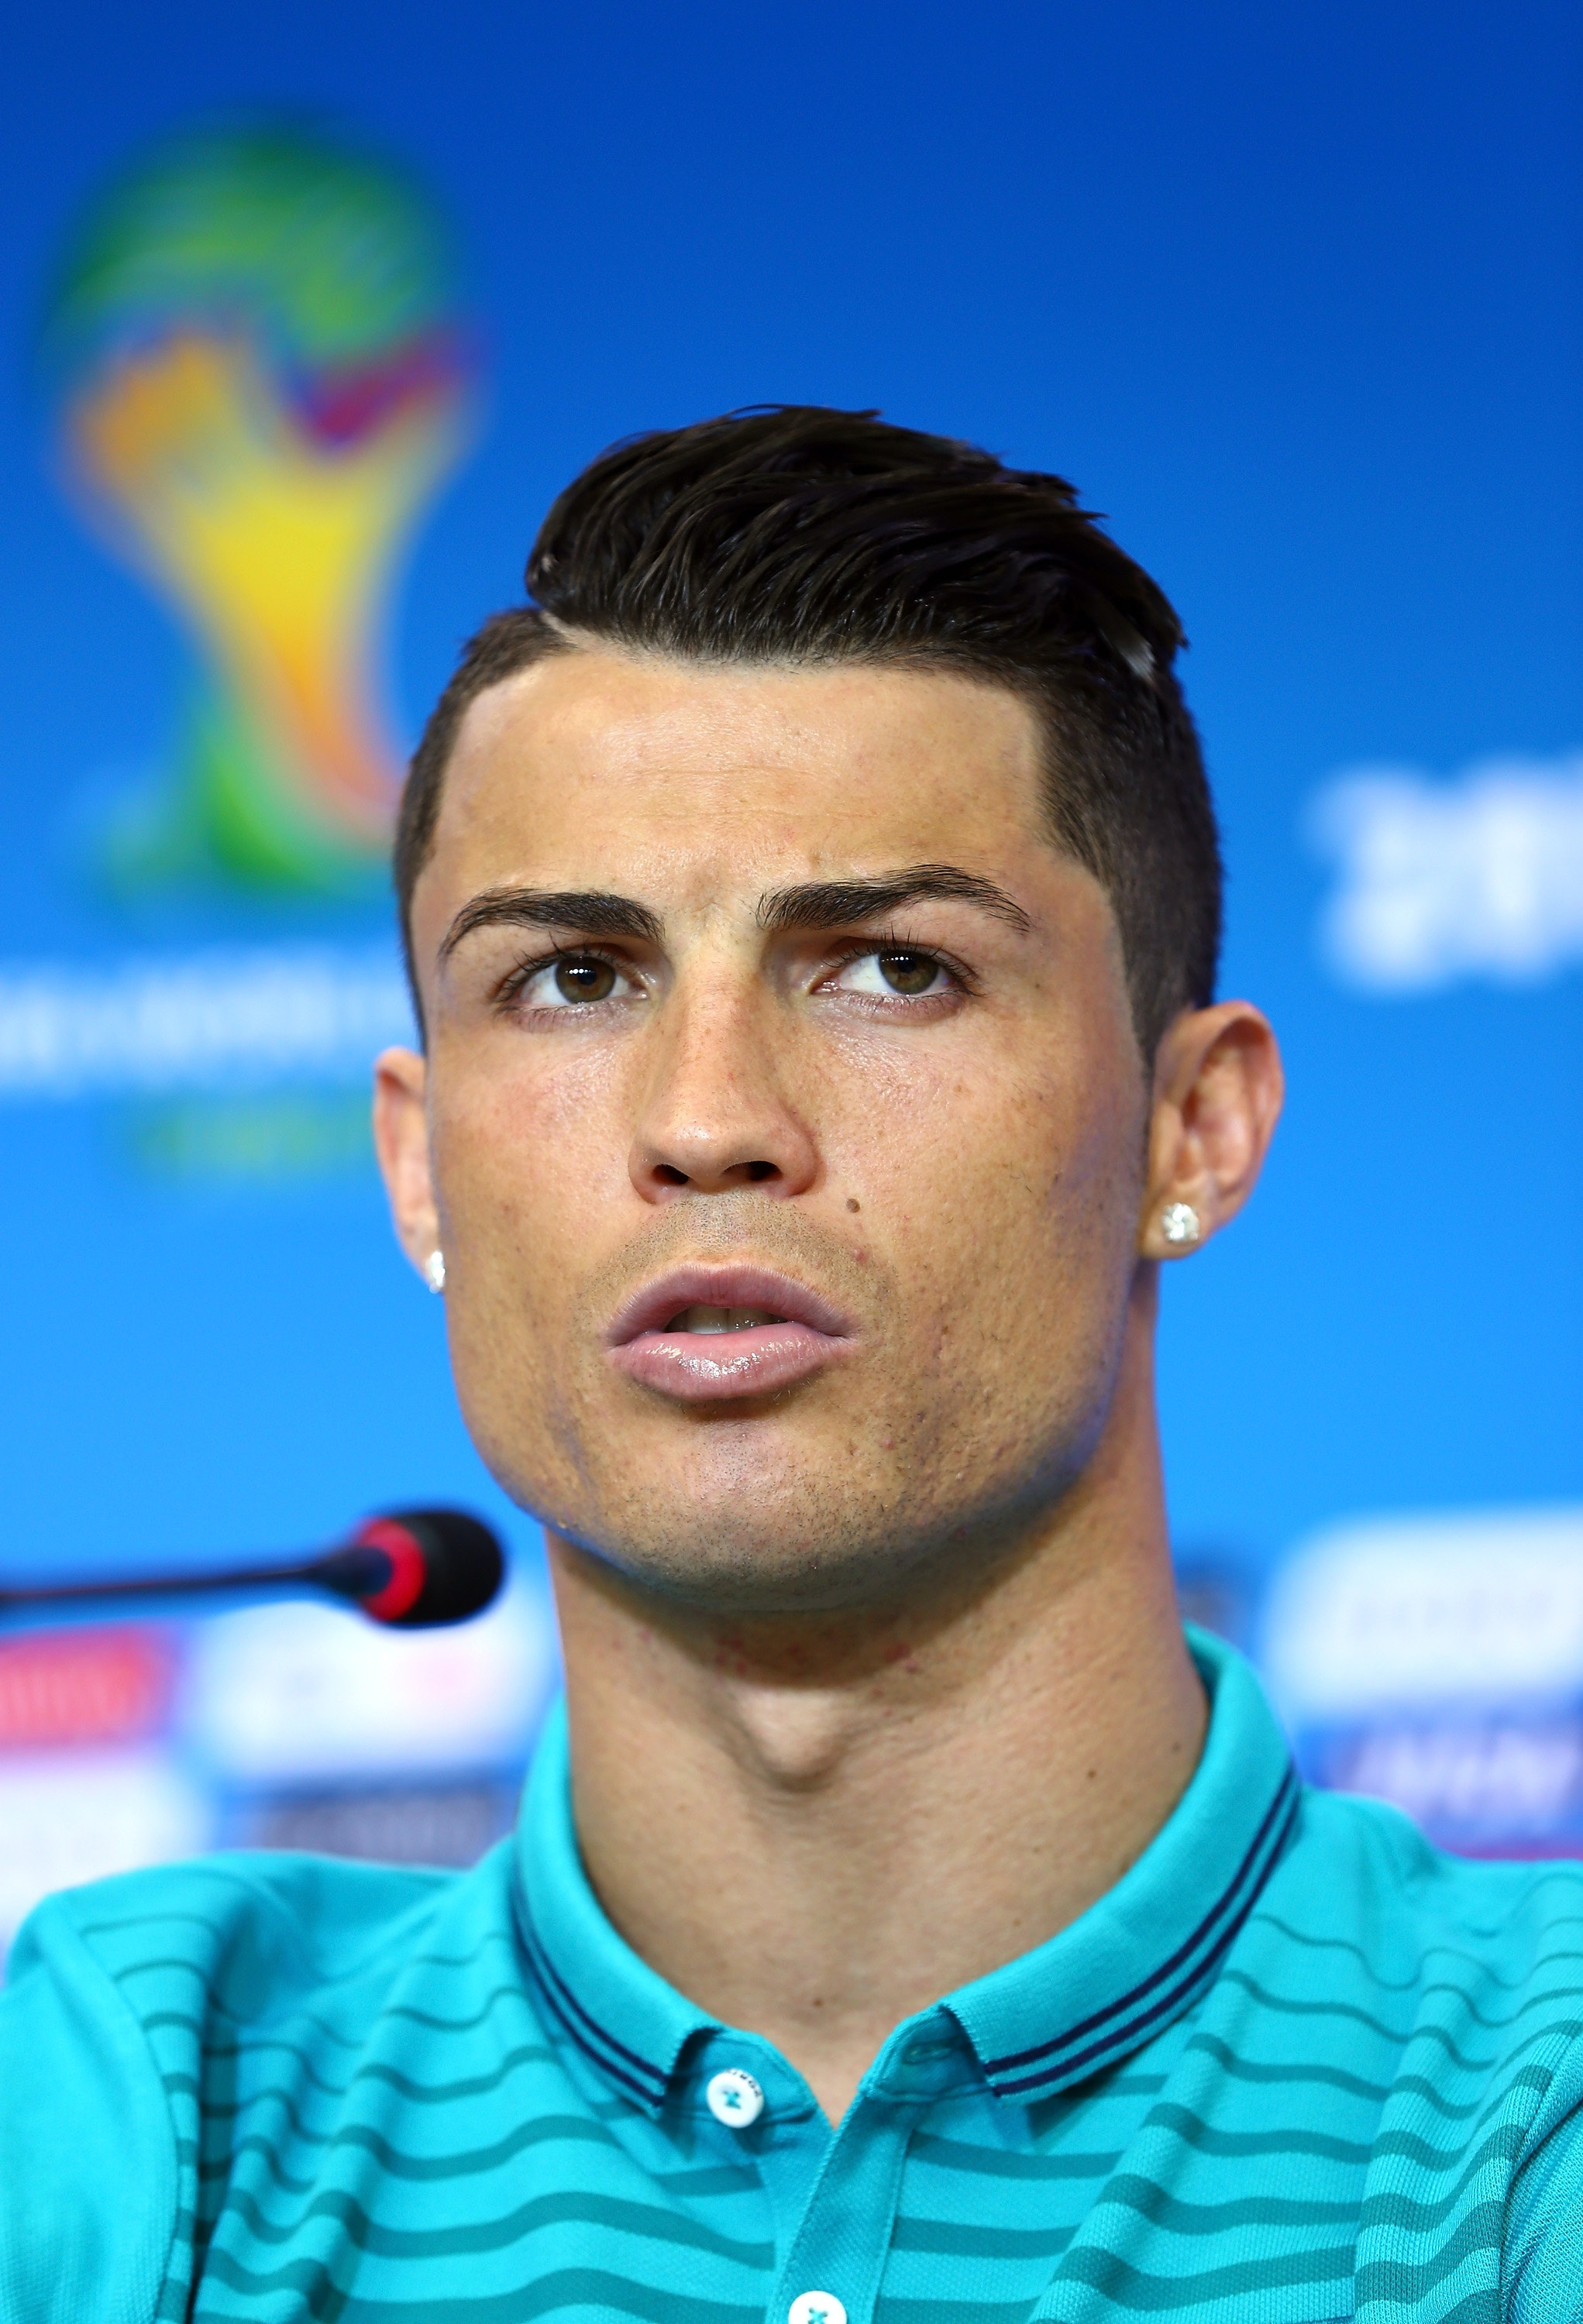 Cristiano Ronaldos Eyebrows And Cara Delevingnes Eyebrows Face Off In The Most Epic Beauty Battle